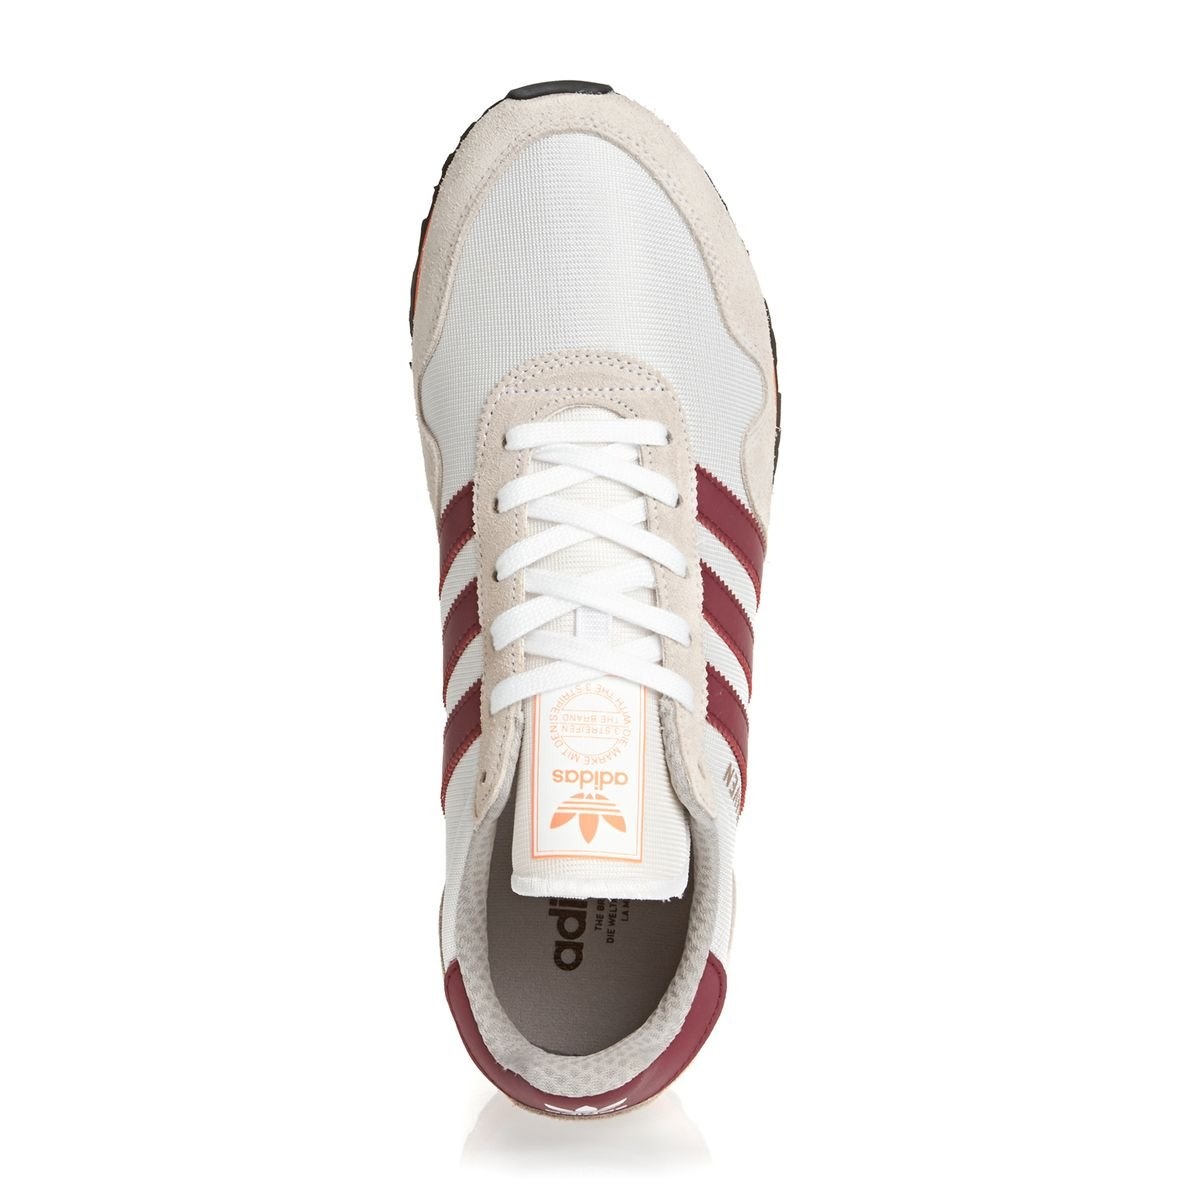 Adidas 4 Haven Chaussures Chaussures 4 Adidas Haven HwrHaBq